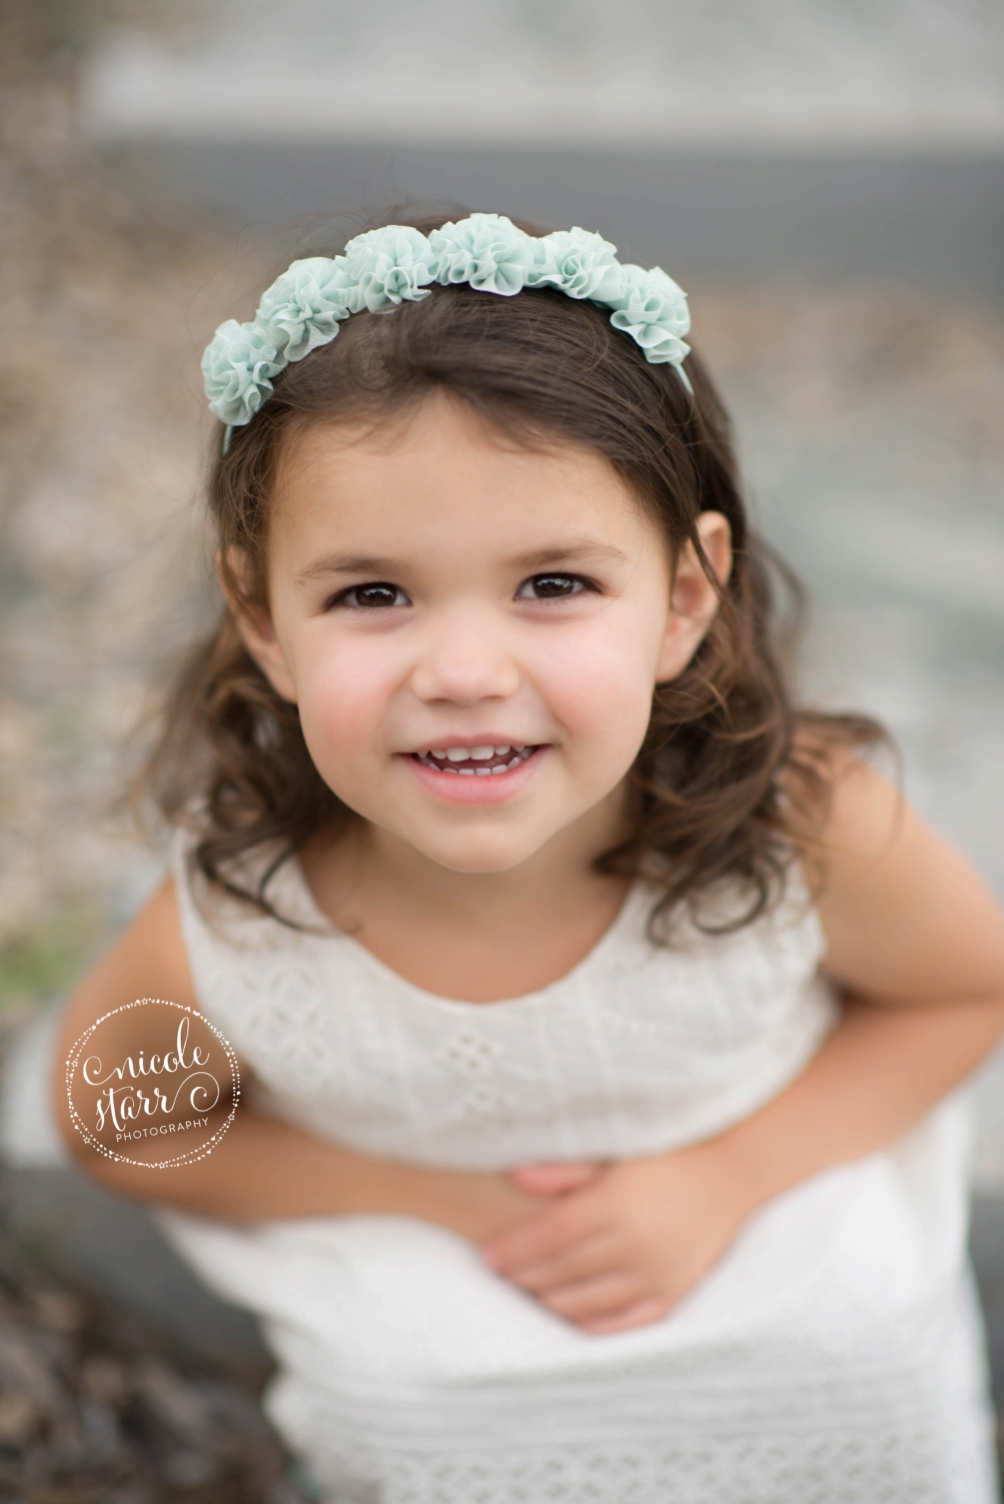 little girl with headband and white dress